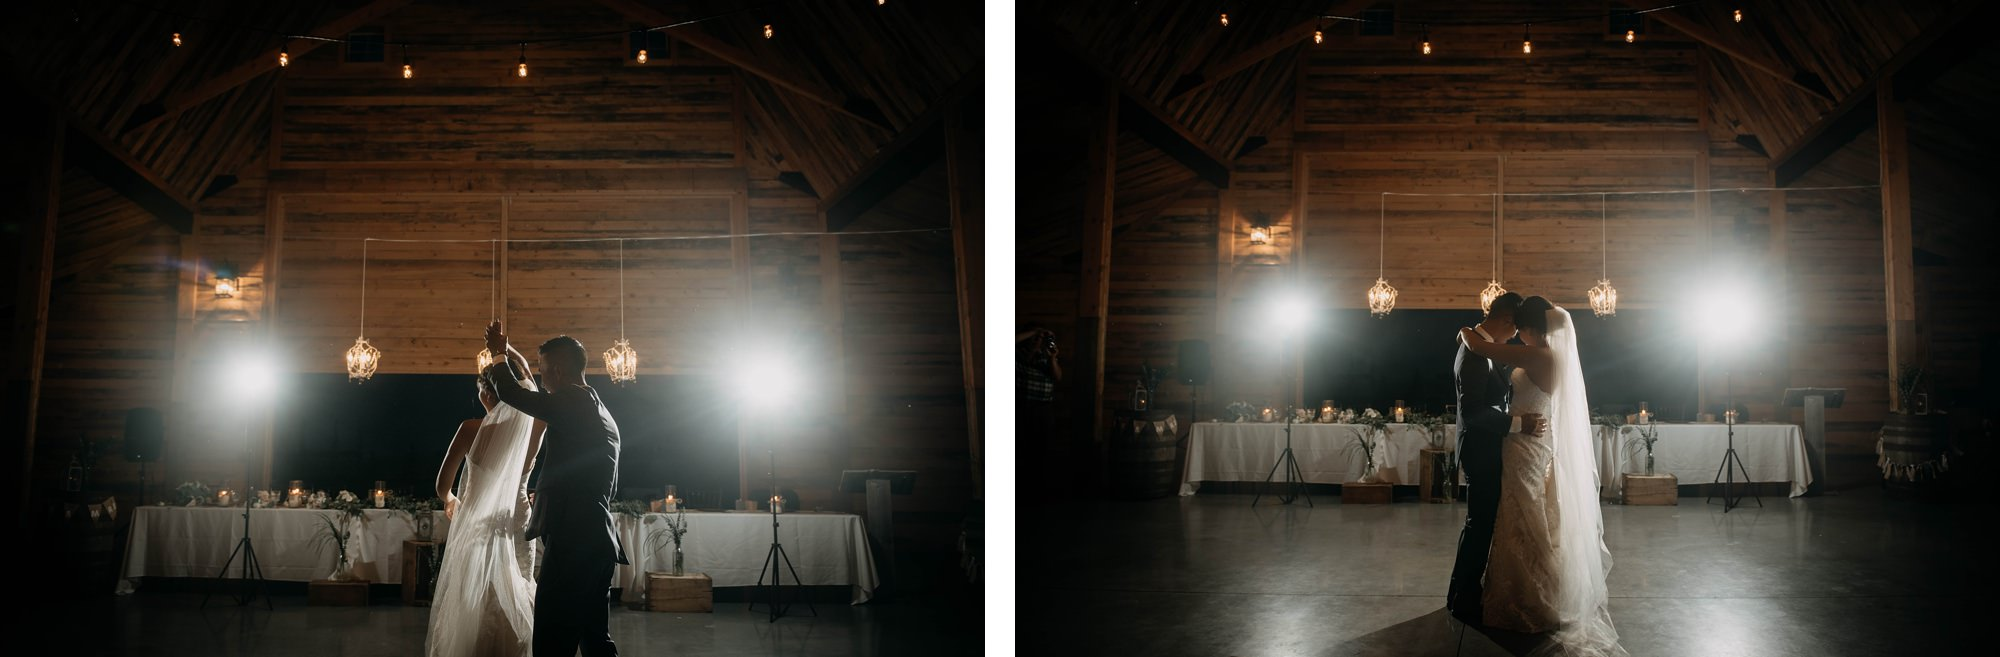 first dance bride and groom in willow lane barn wedding in olds alberta